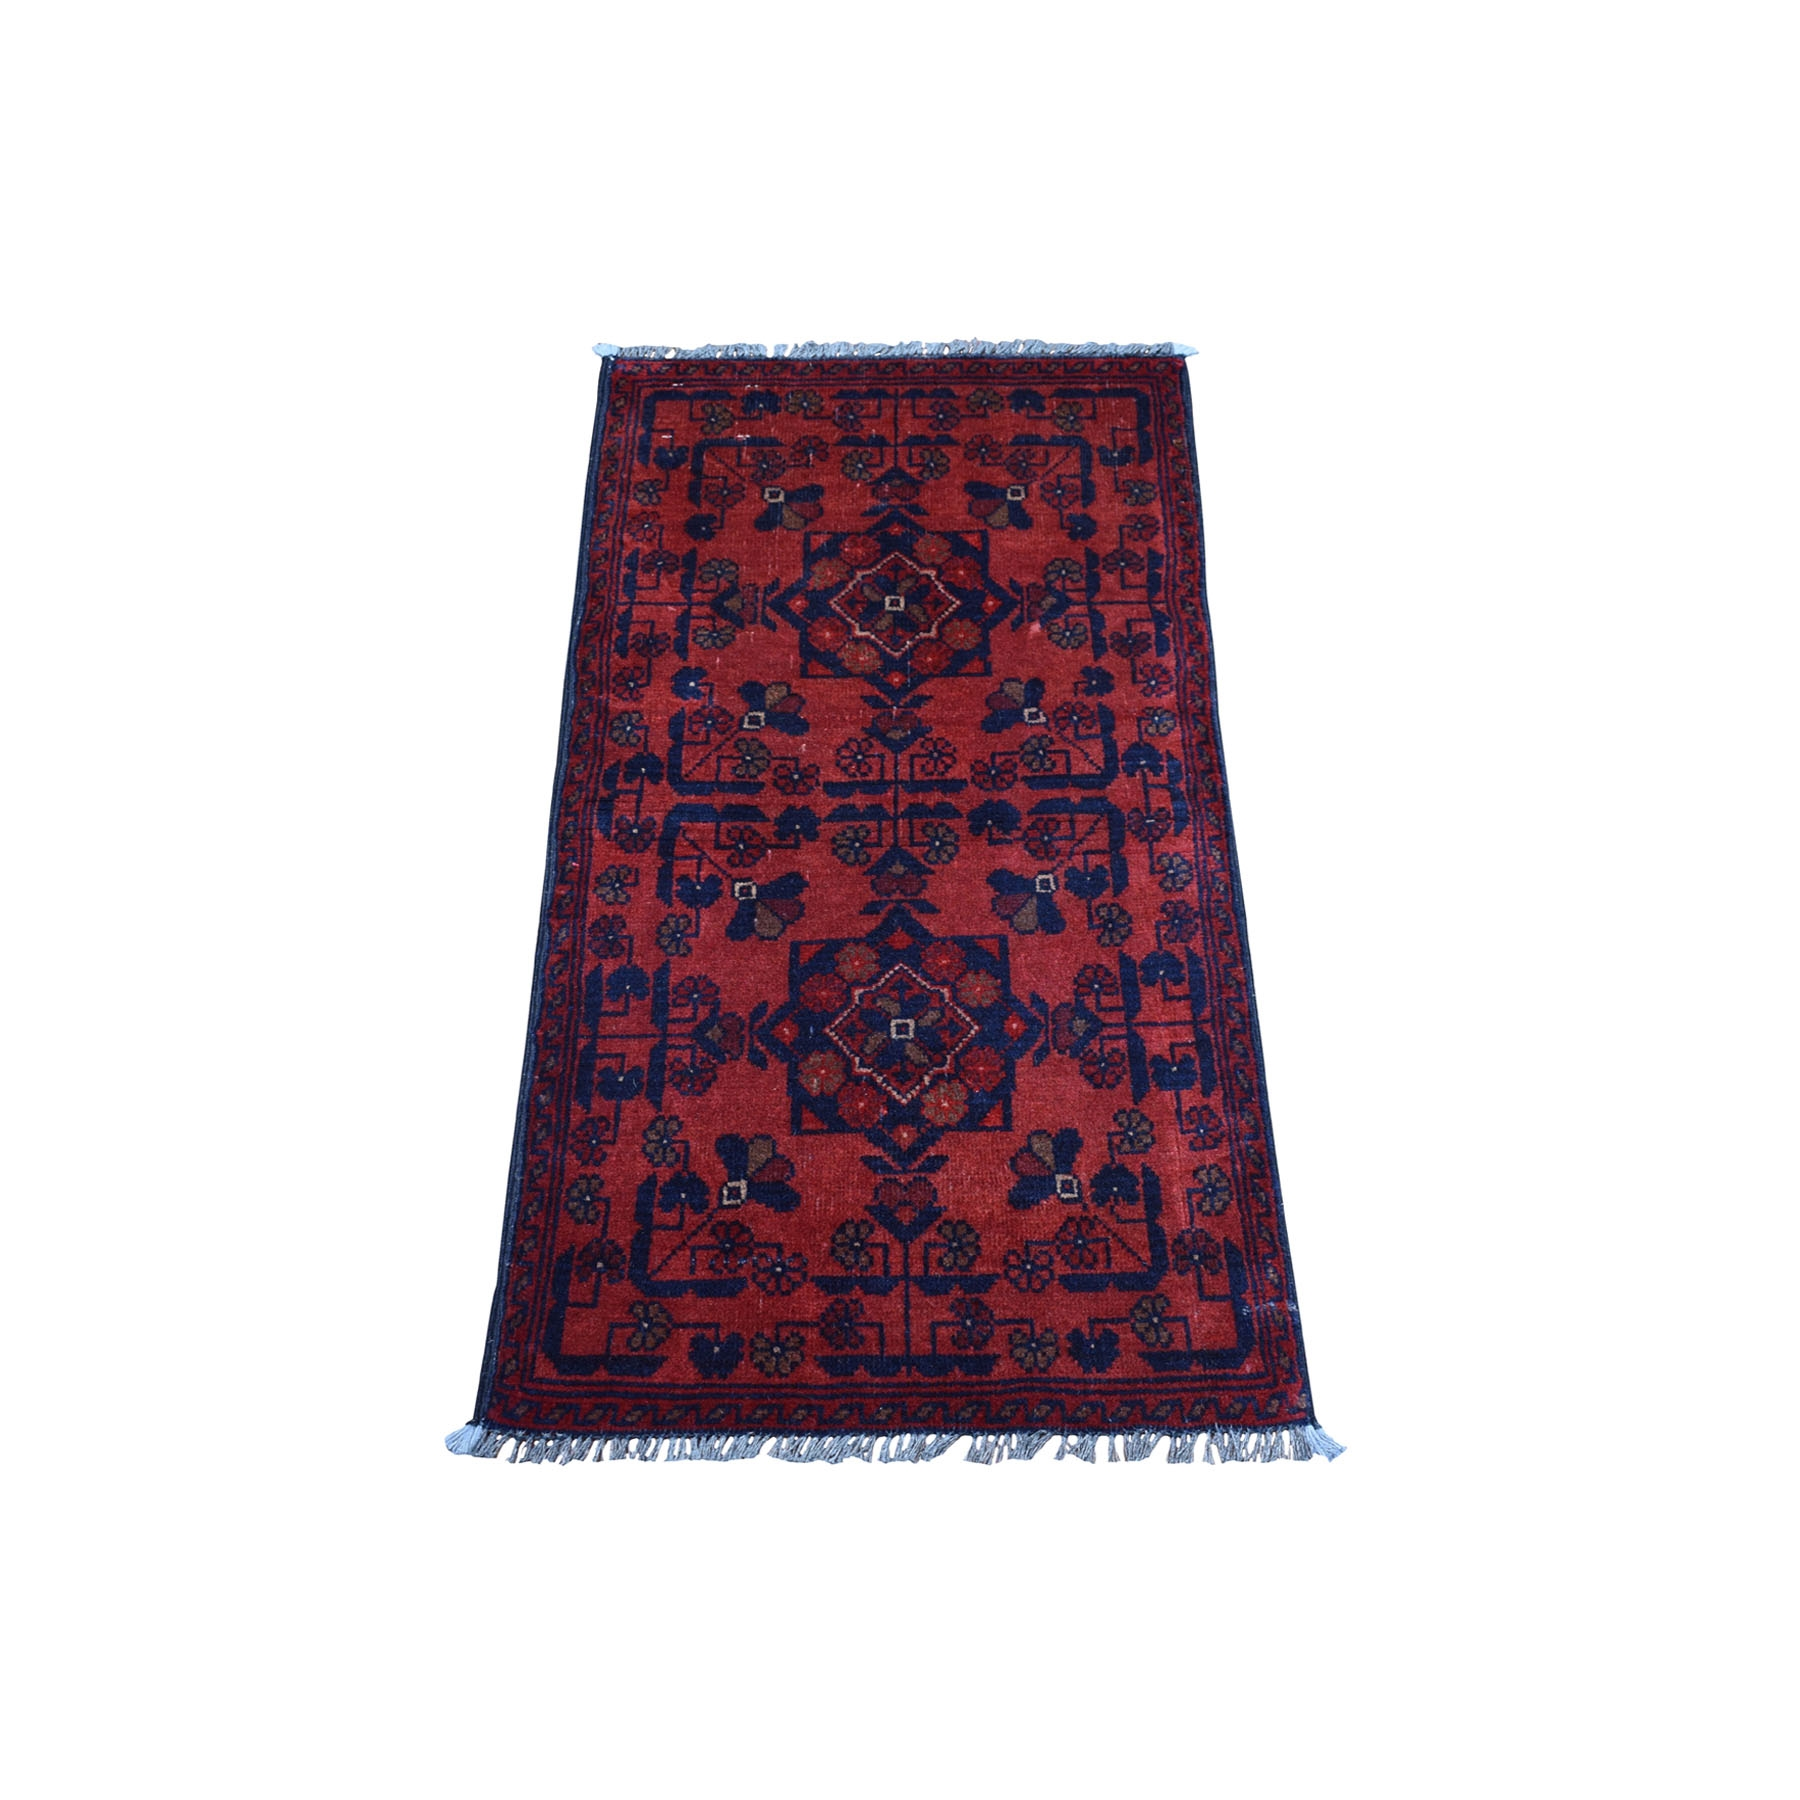 "1'8""x3'3"" Deep and Saturated Red Geometric Afghan Andkhoy Pure Wool Hand Woven Oriental Rug"